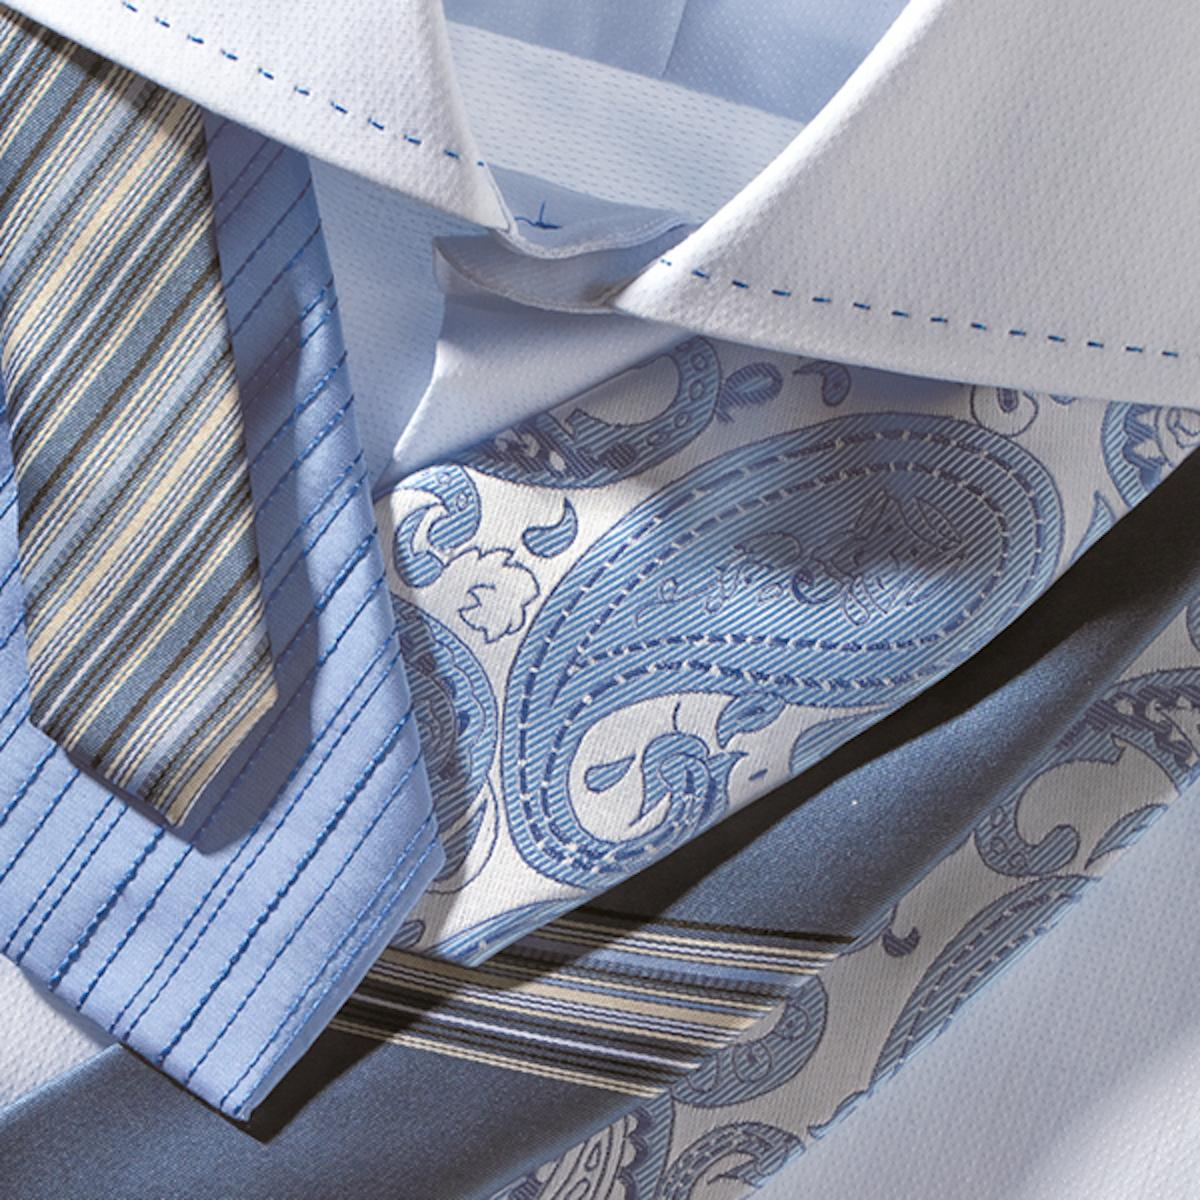 Idea of combining a white shirt with different ties, striped or patterned